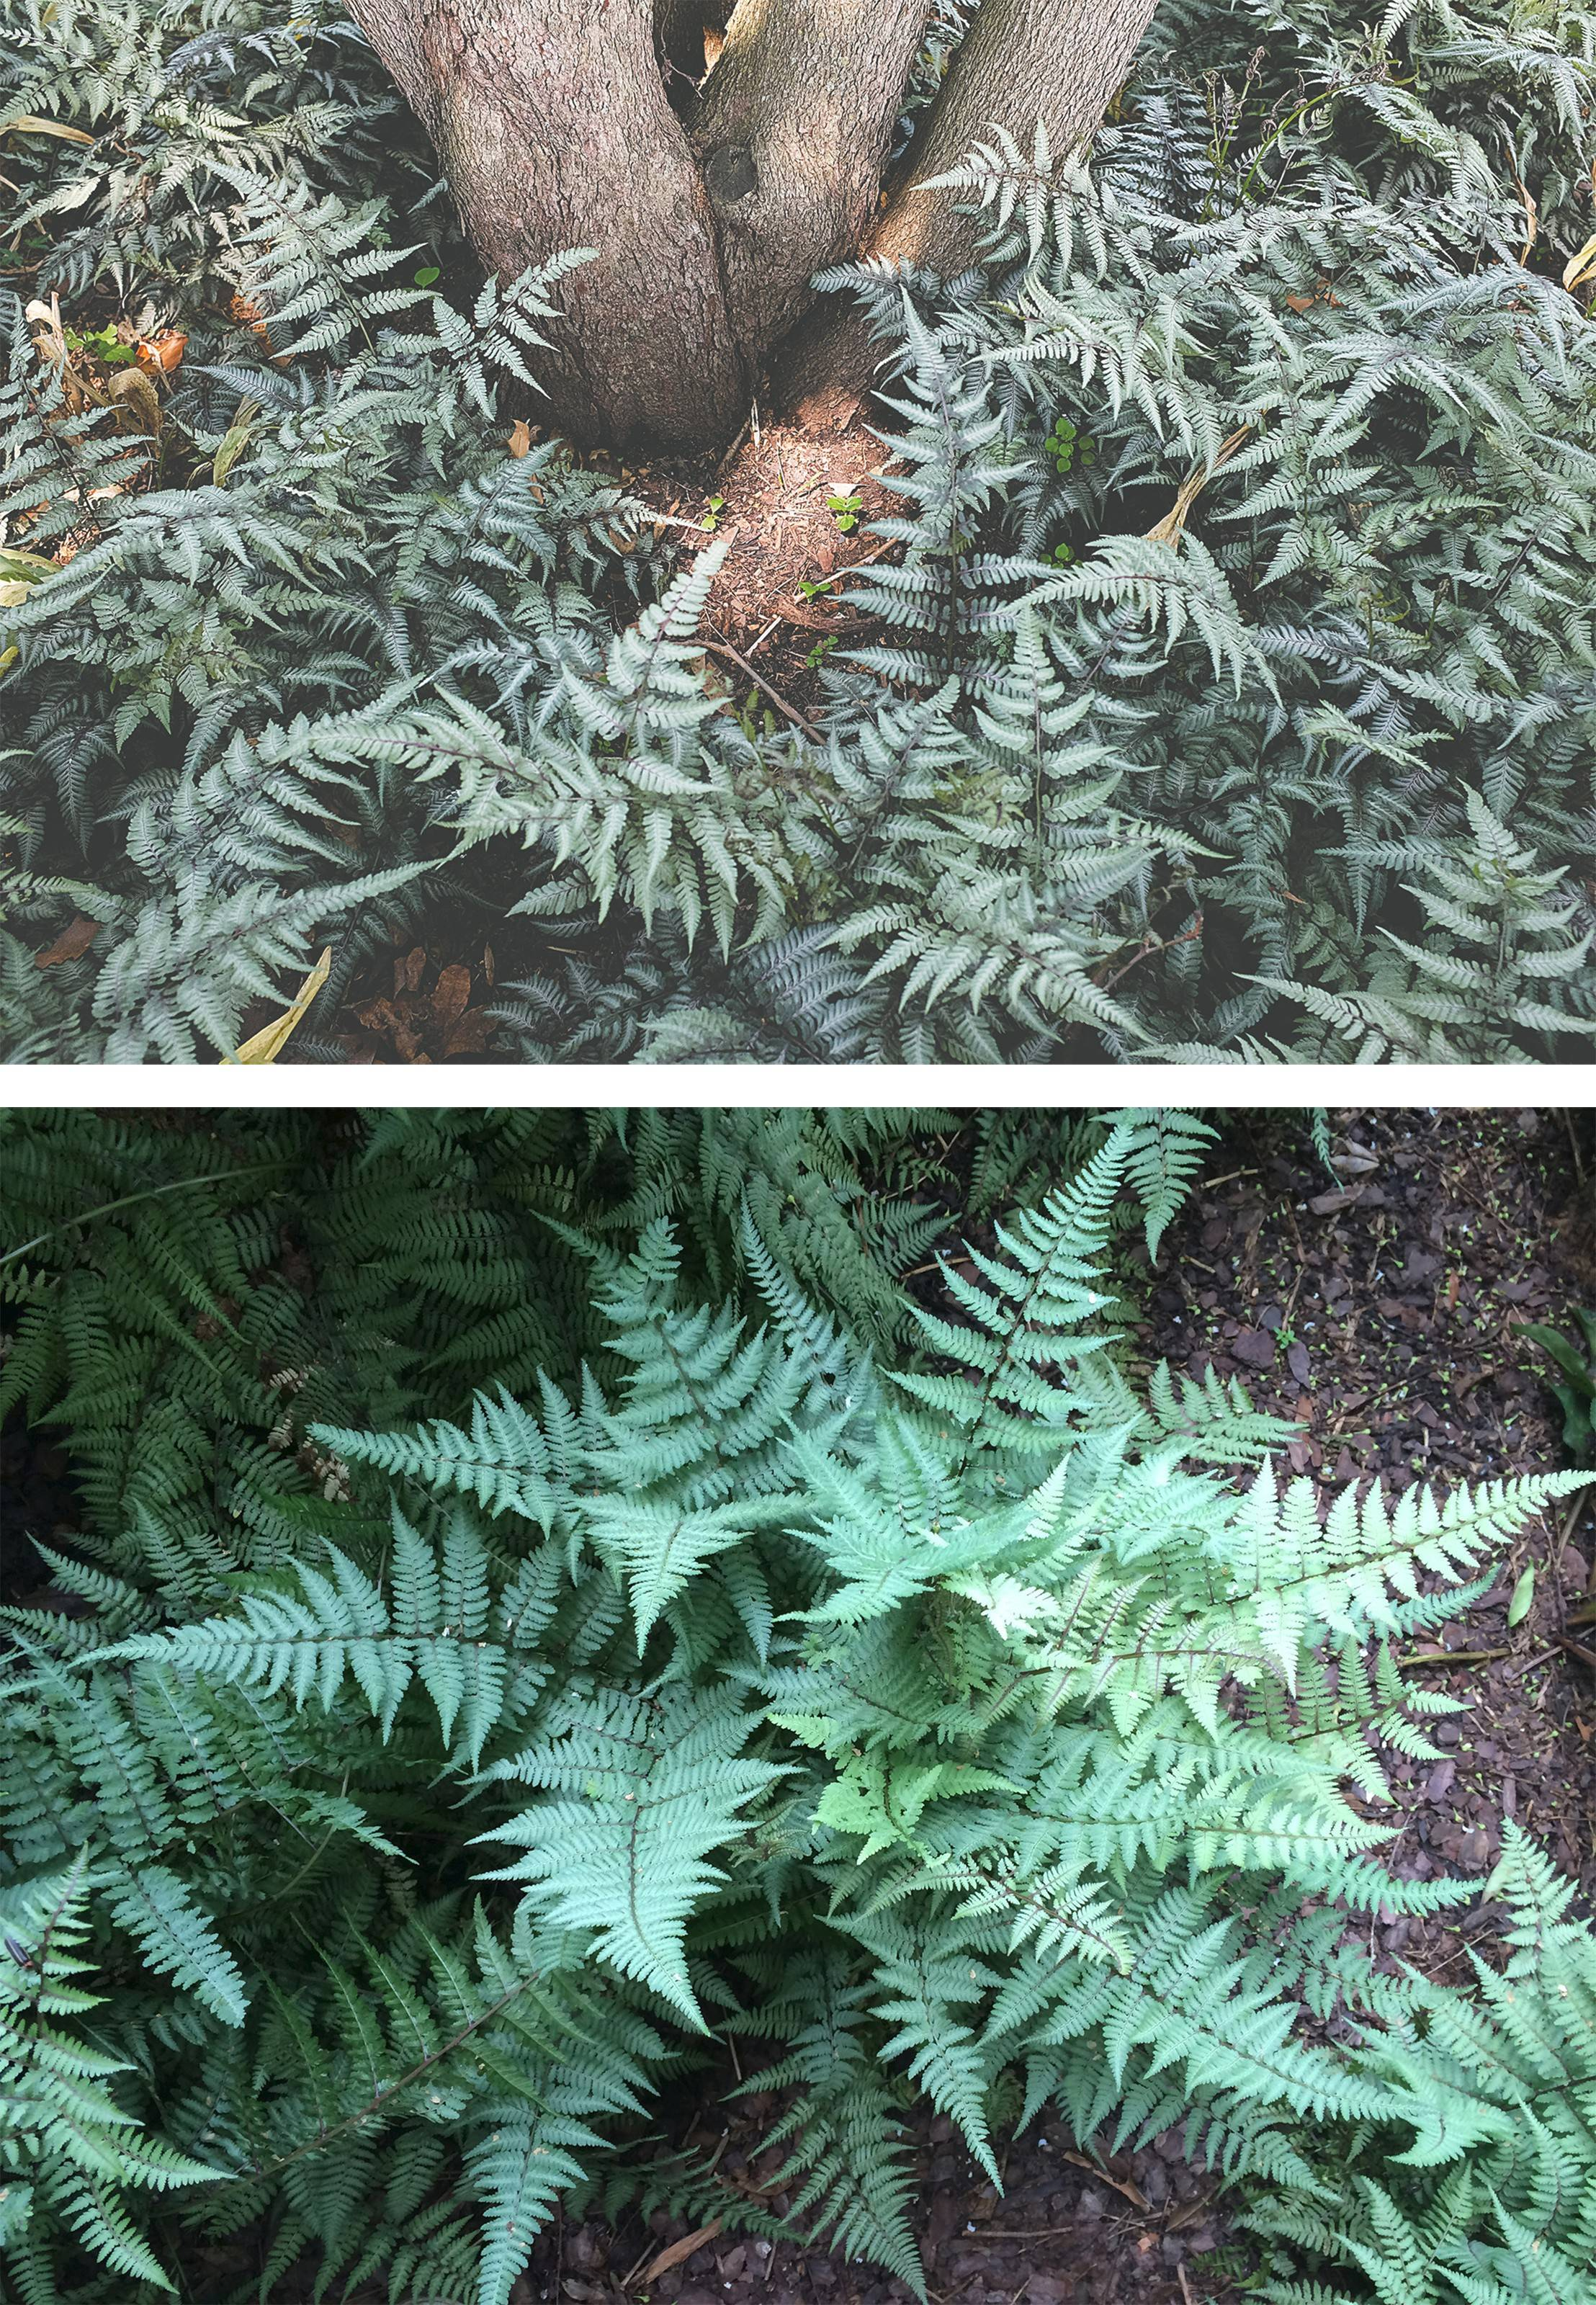 Top, the Japanese painted fern, valued for its silver foliage. At bottom, the Ghost fern which exhibits extraordinary vigor.